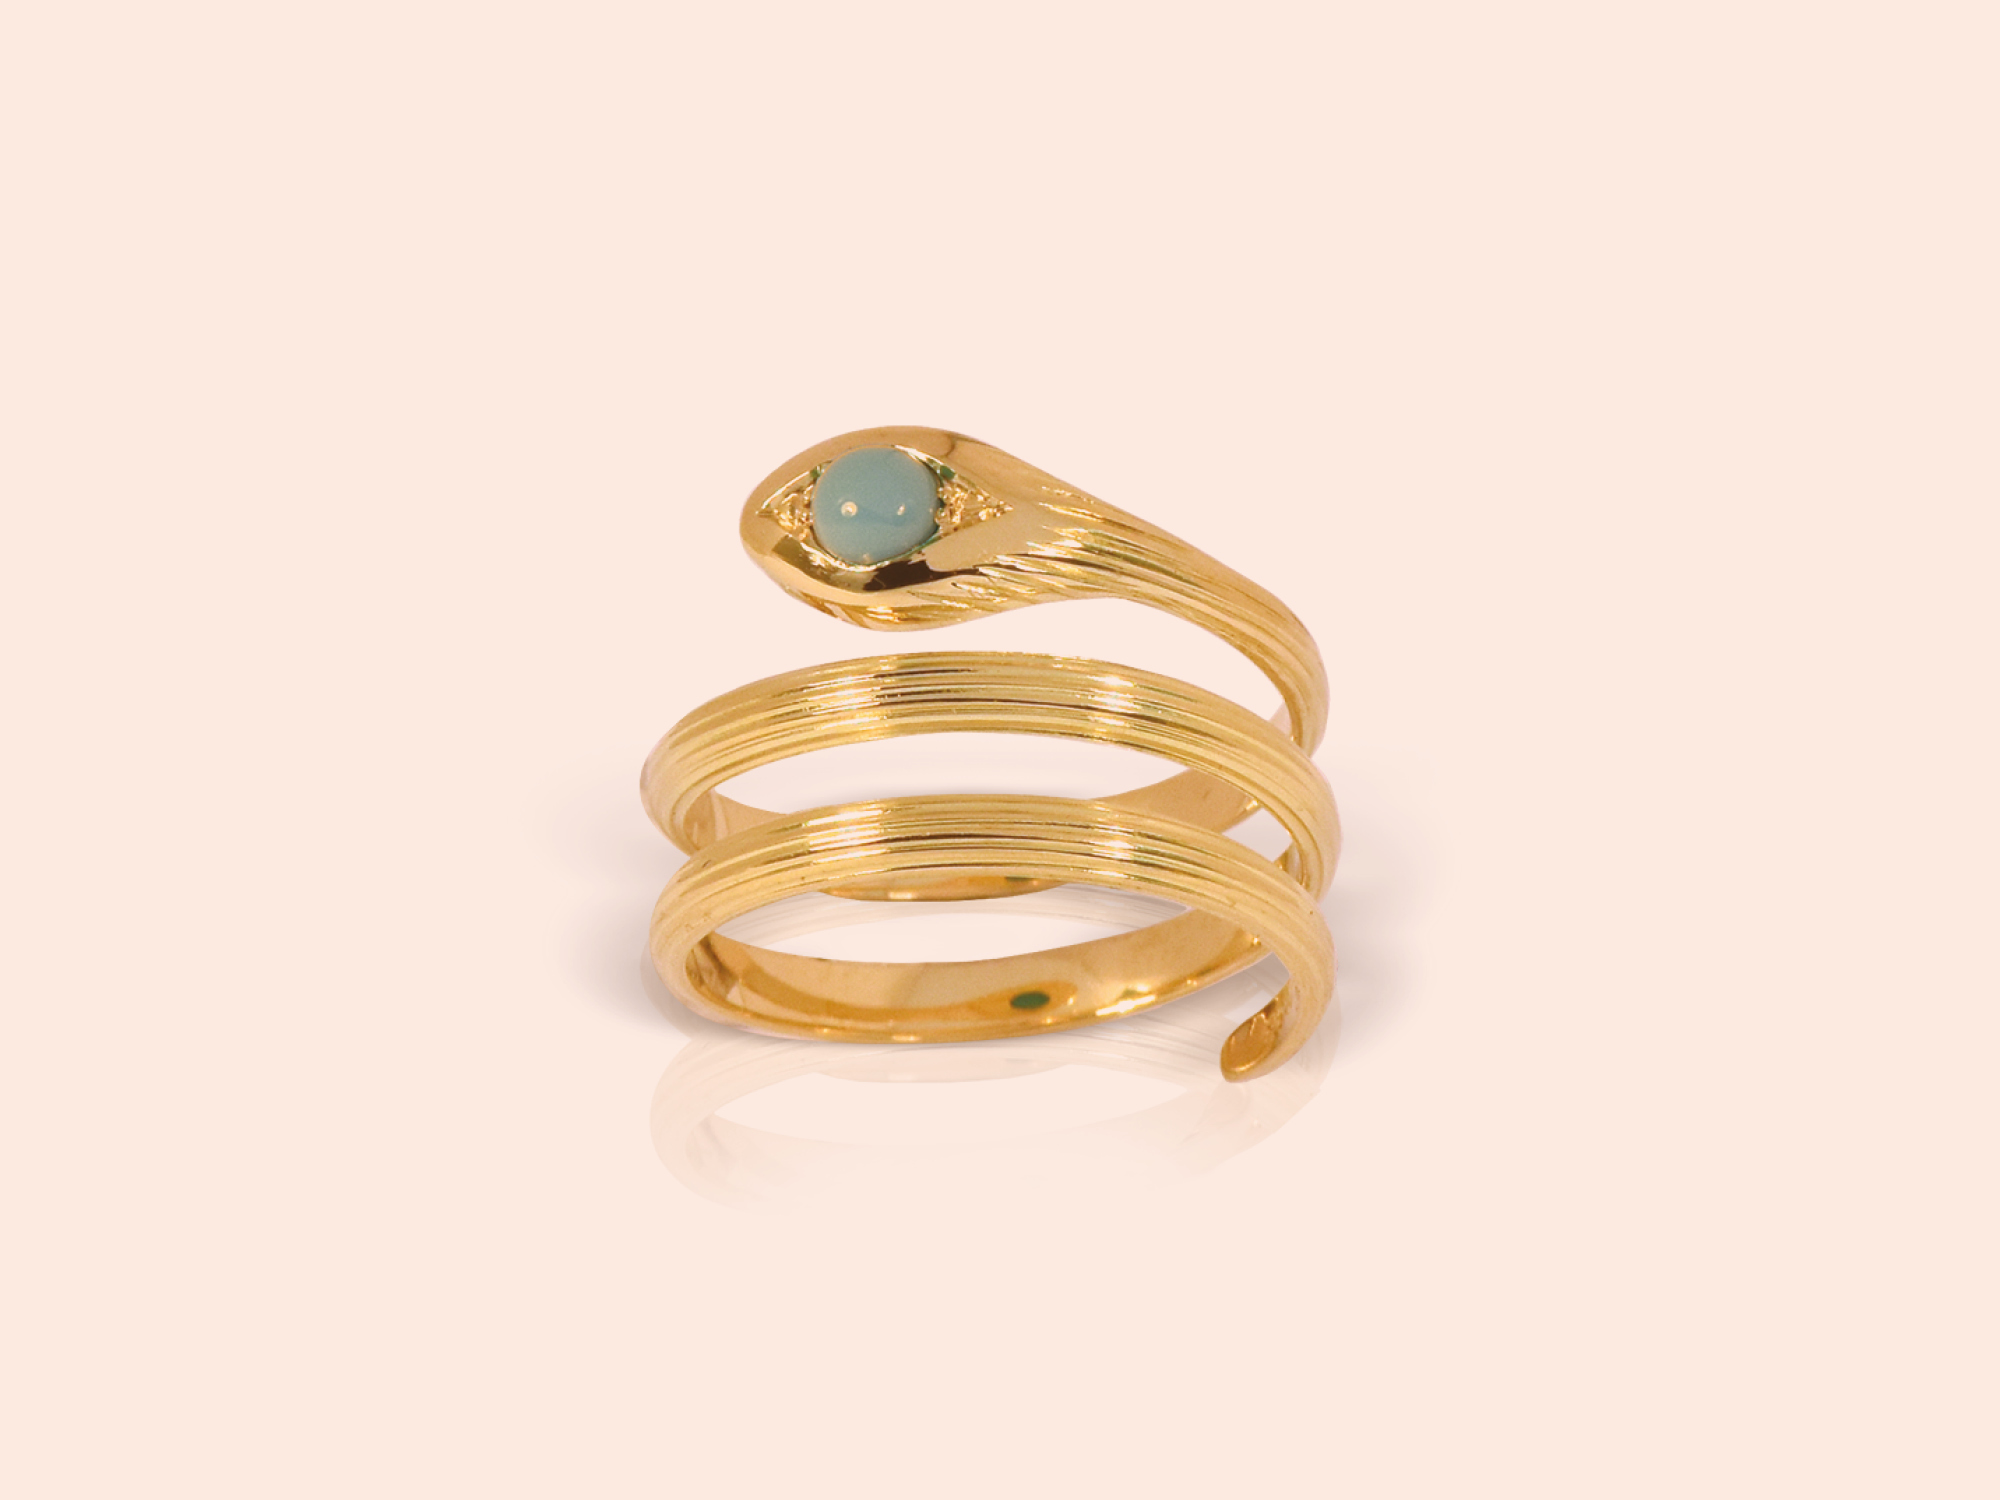 Lalaounis Snake ring in 18K gold with turquoise stone